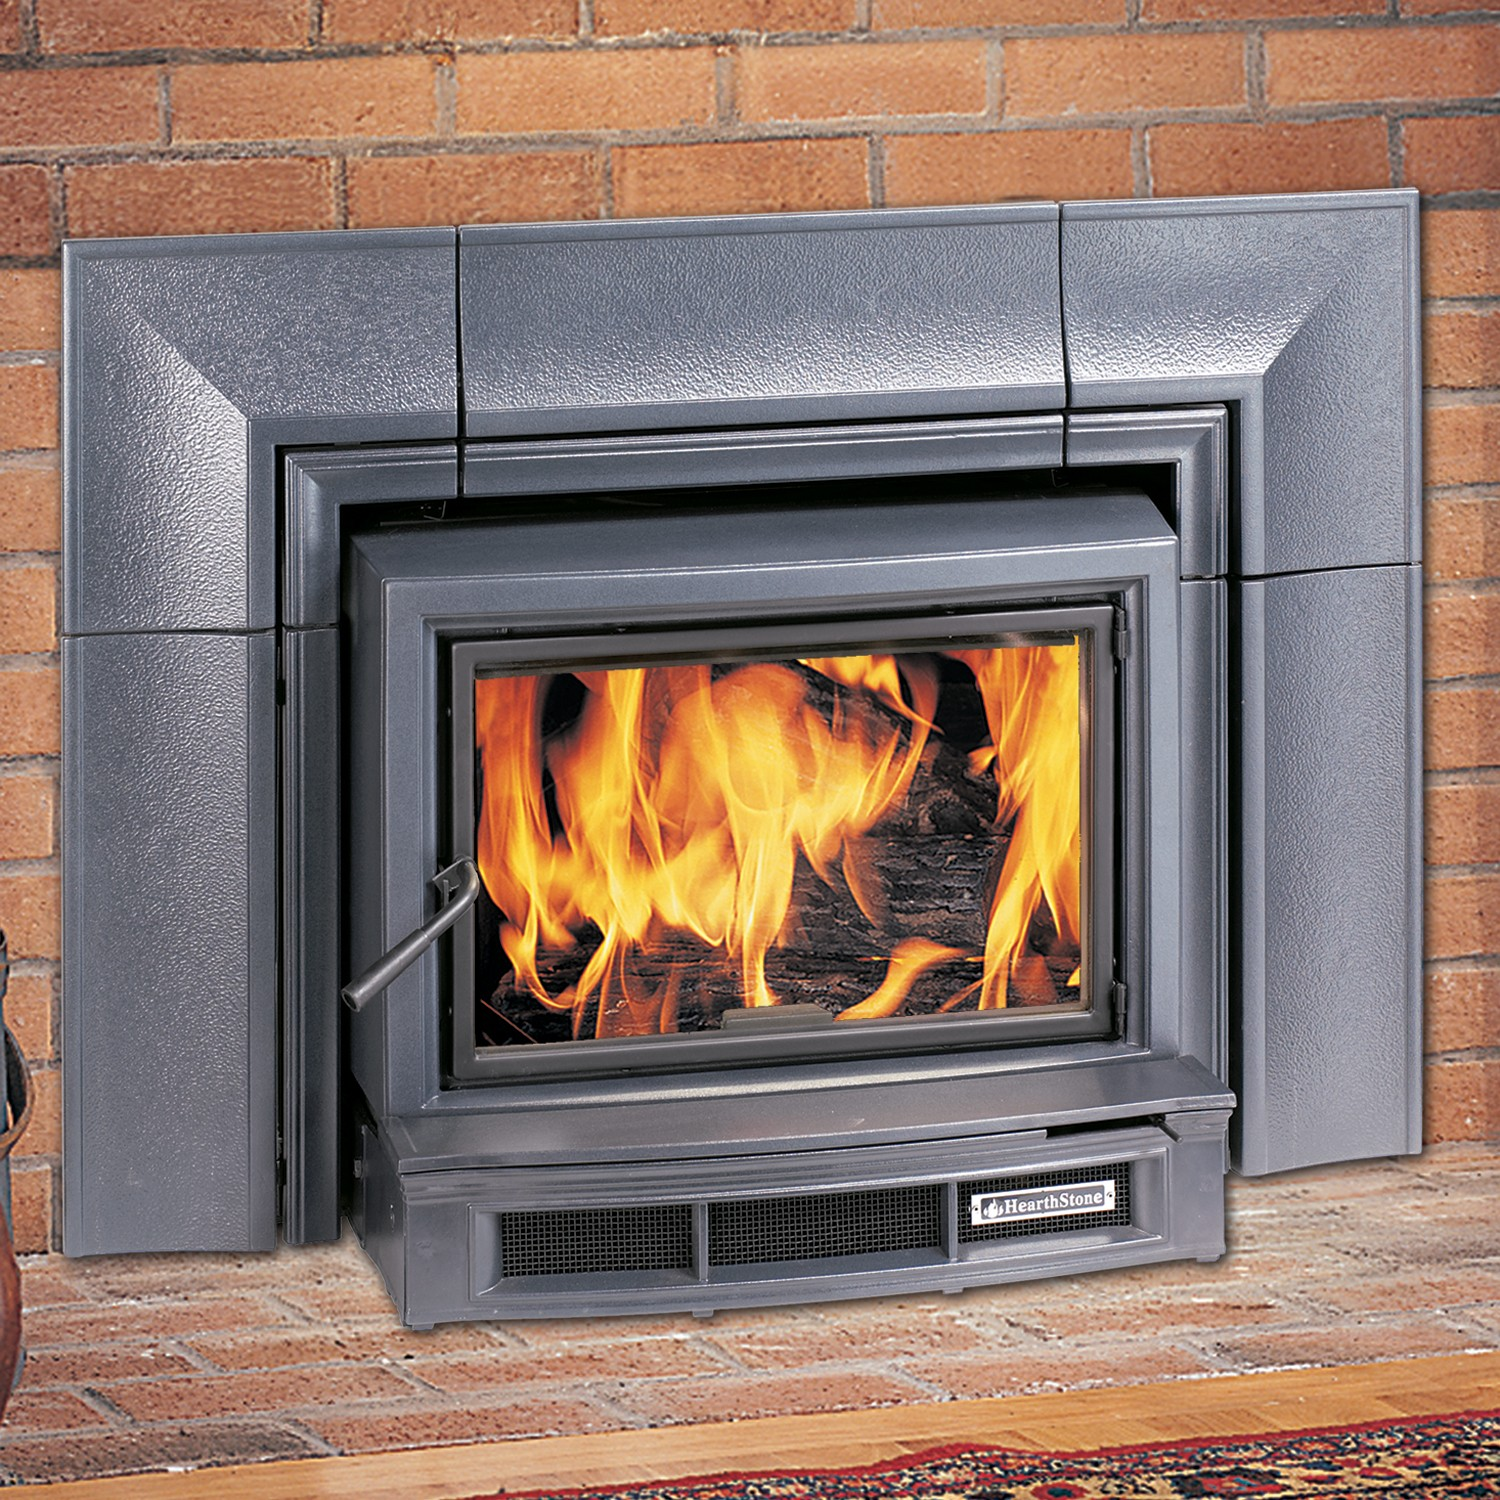 Hearthstone Morgan Wood Fireplace Insert Country Stove